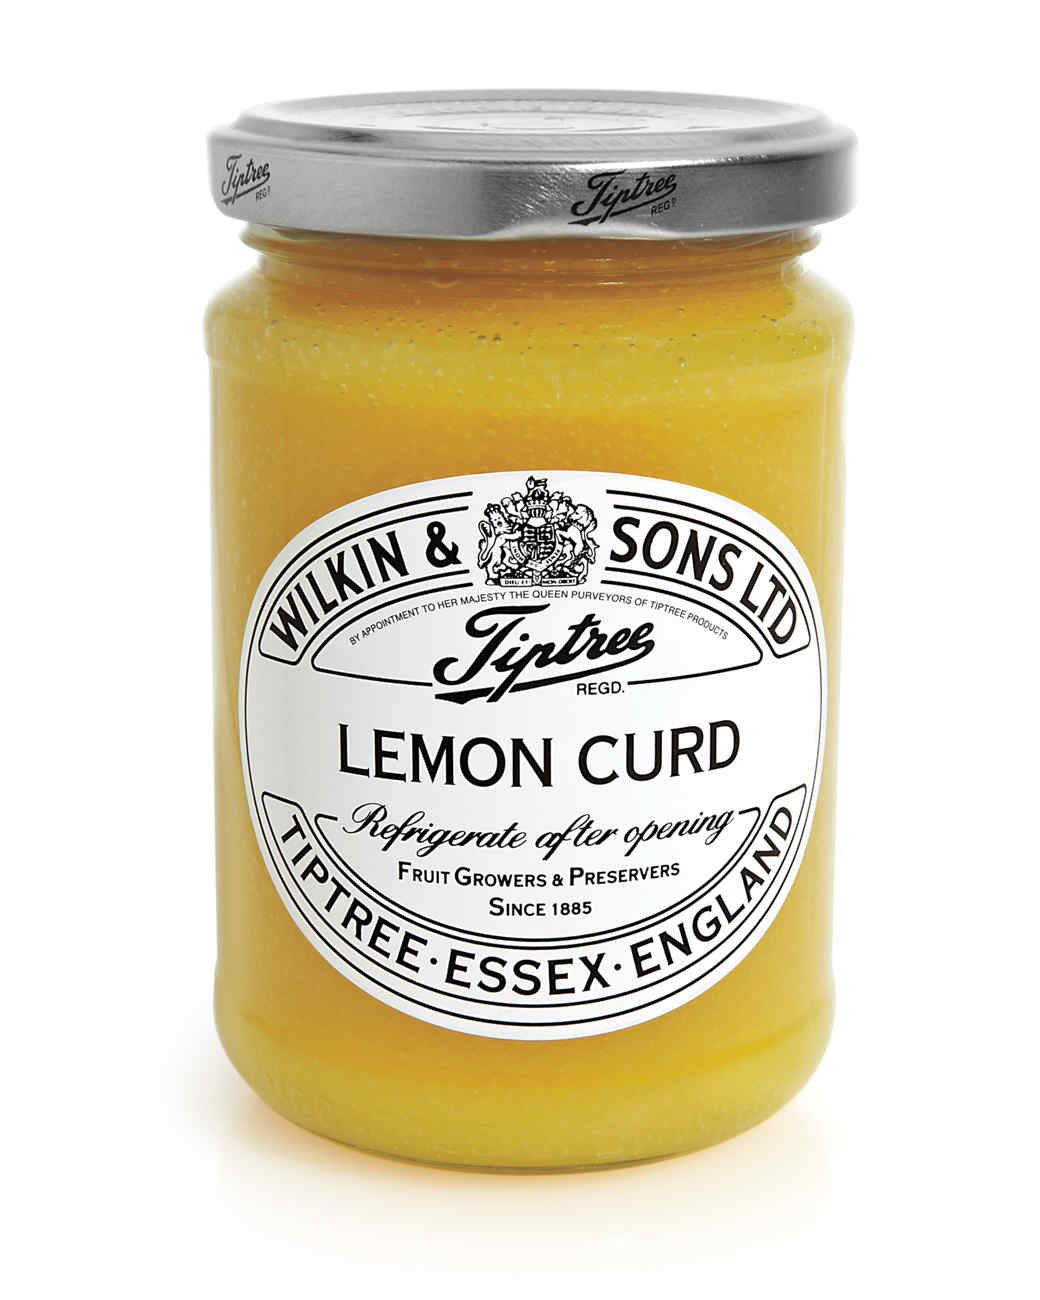 wilkin-sons-lemon-curd-02-mld109147.jpg